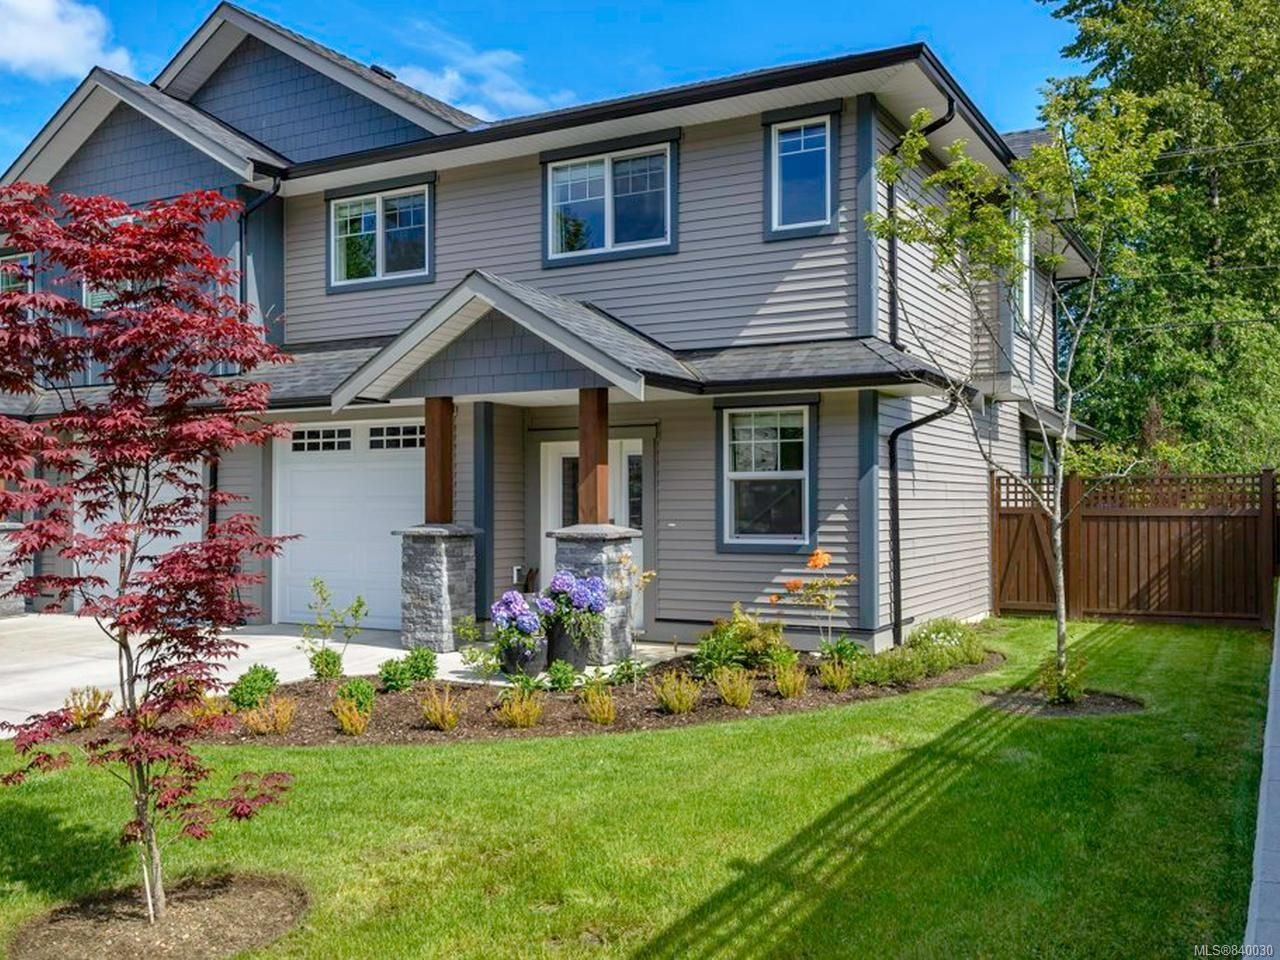 Main Photo: 123 2077 20th St in COURTENAY: CV Courtenay City Row/Townhouse for sale (Comox Valley)  : MLS®# 840030